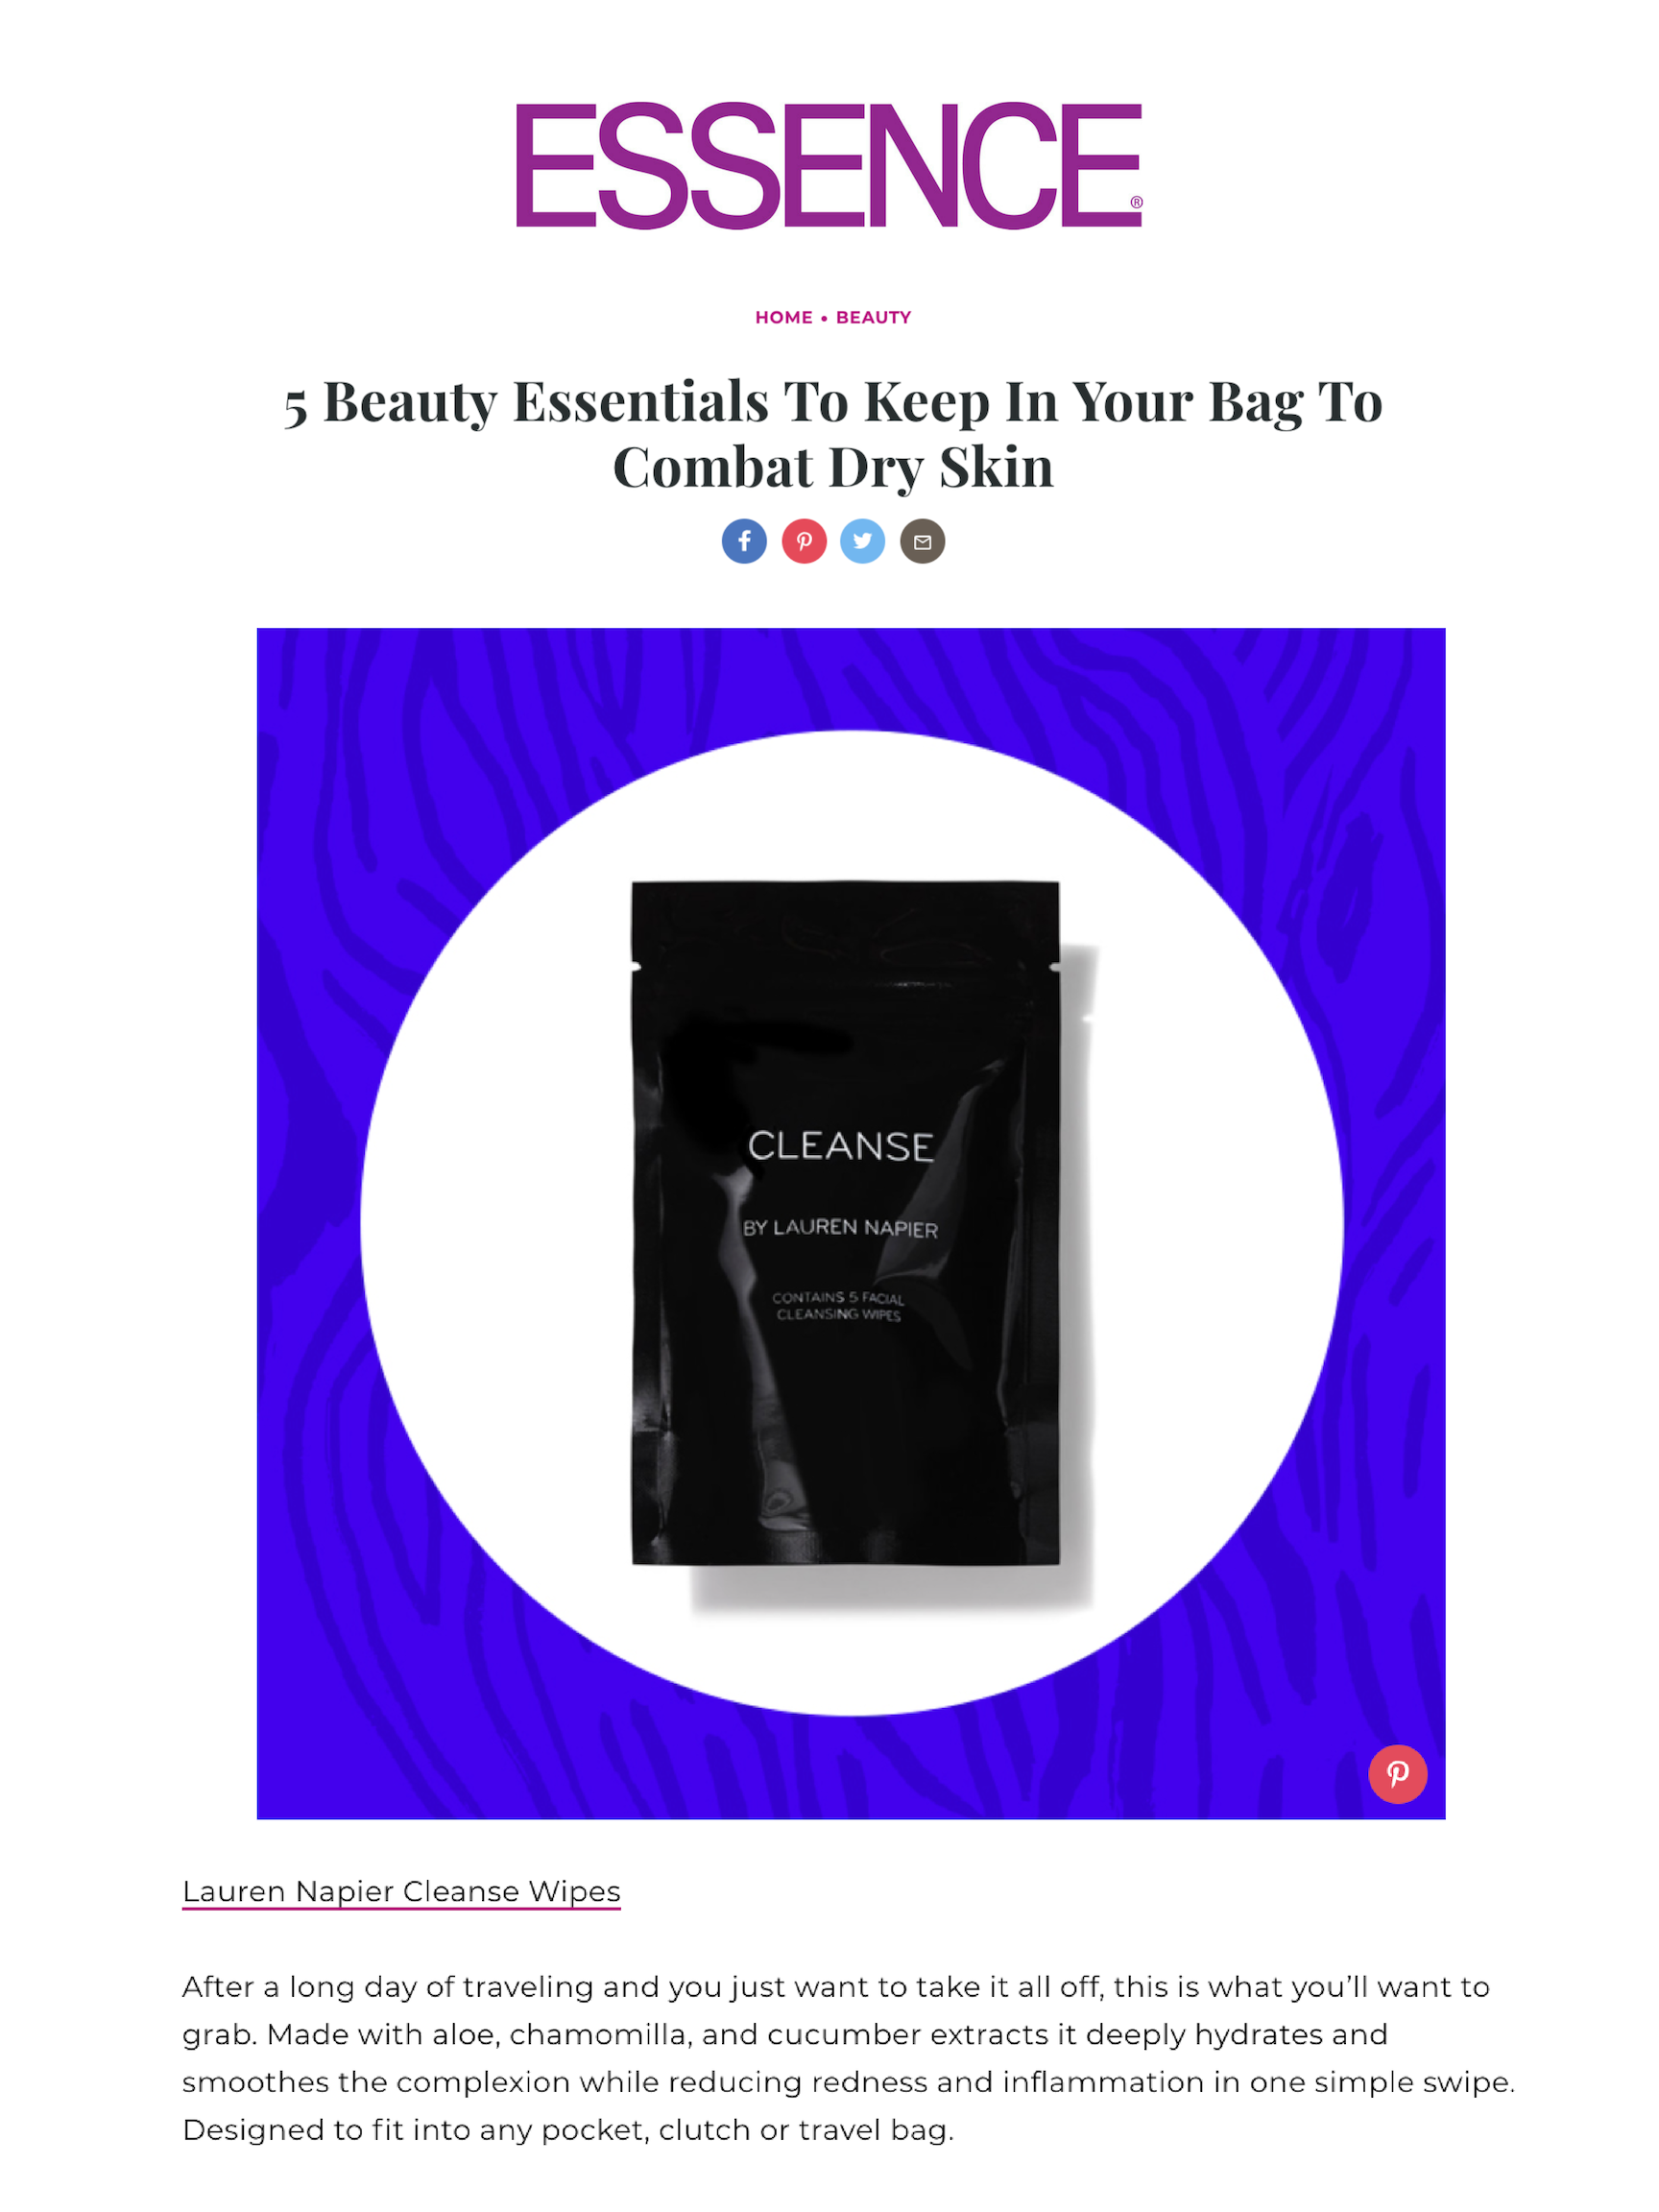 Lauren Napier Beauty, CLEANSE by LAUREN NAPIER ESSENCE MAGAZINE